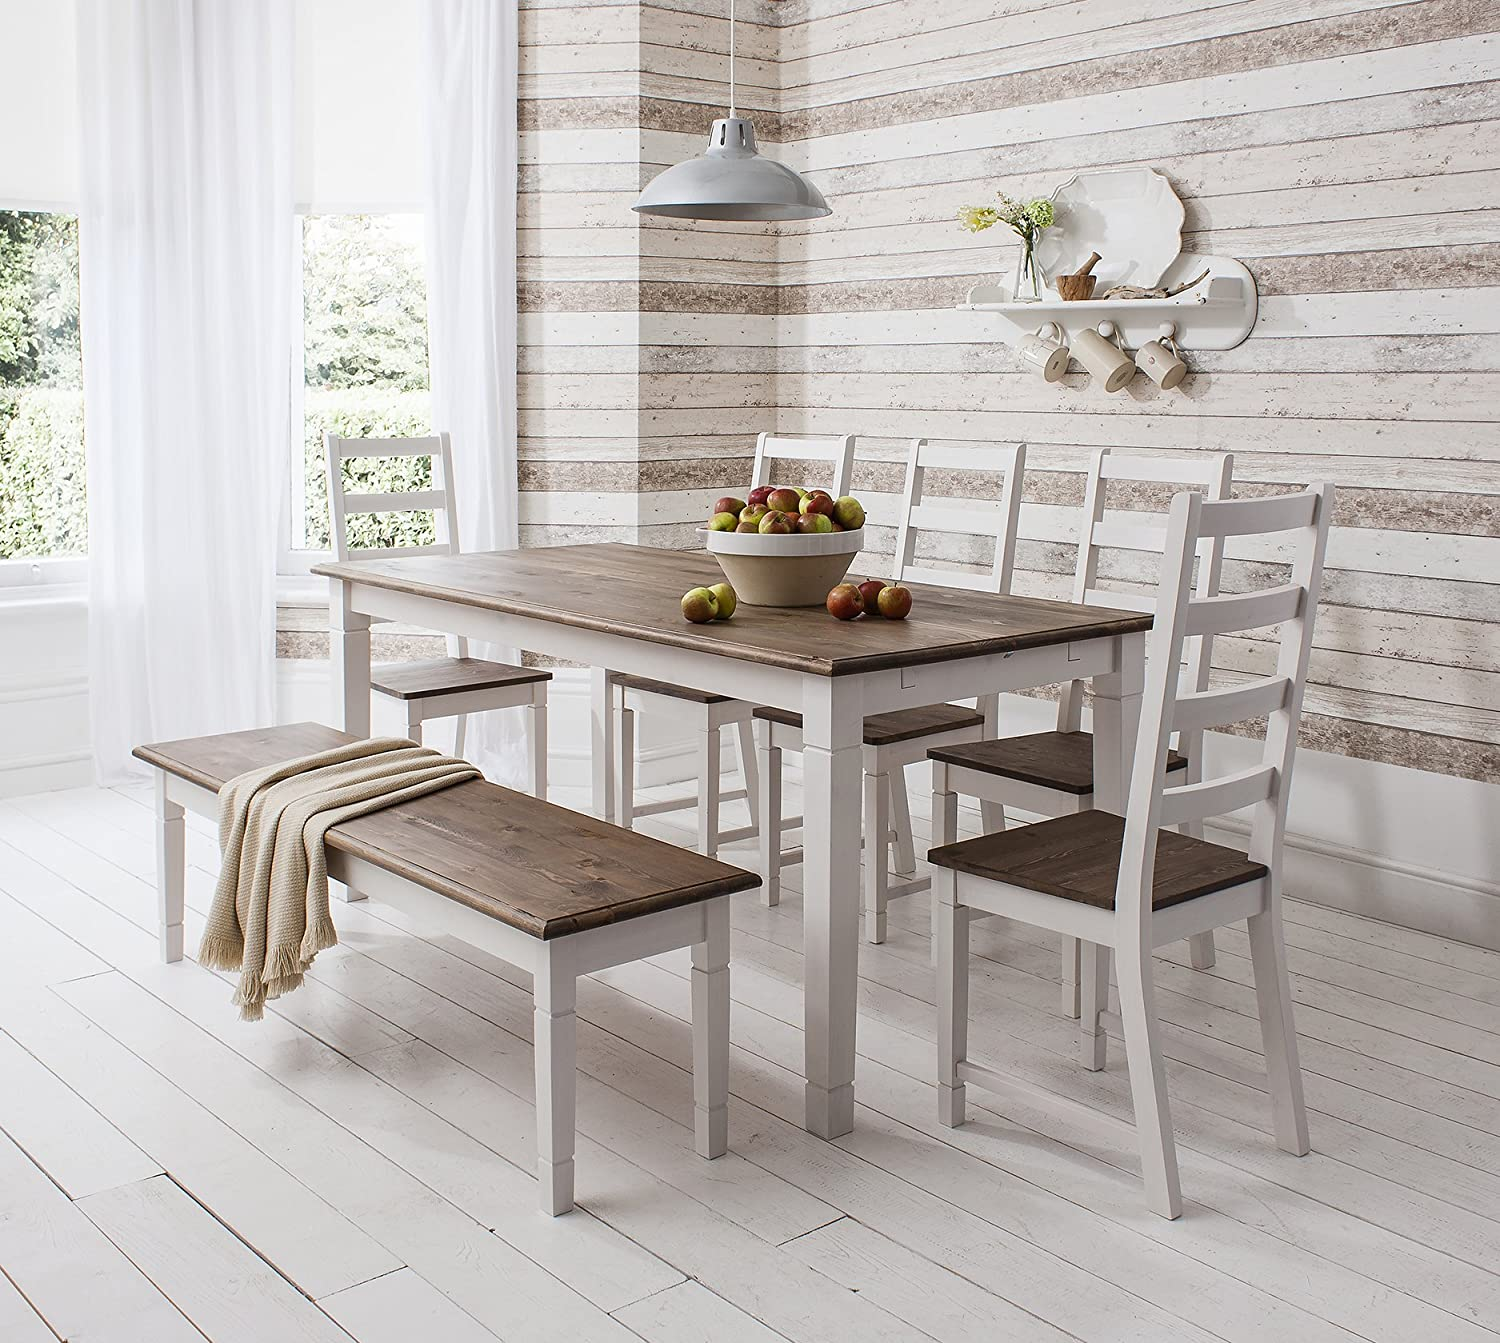 Exceptional Table And 4 Chairs And Bench Canterbury Dining Table In Contemporary Dark  Pine And White: Amazon.co.uk: Kitchen U0026 Home